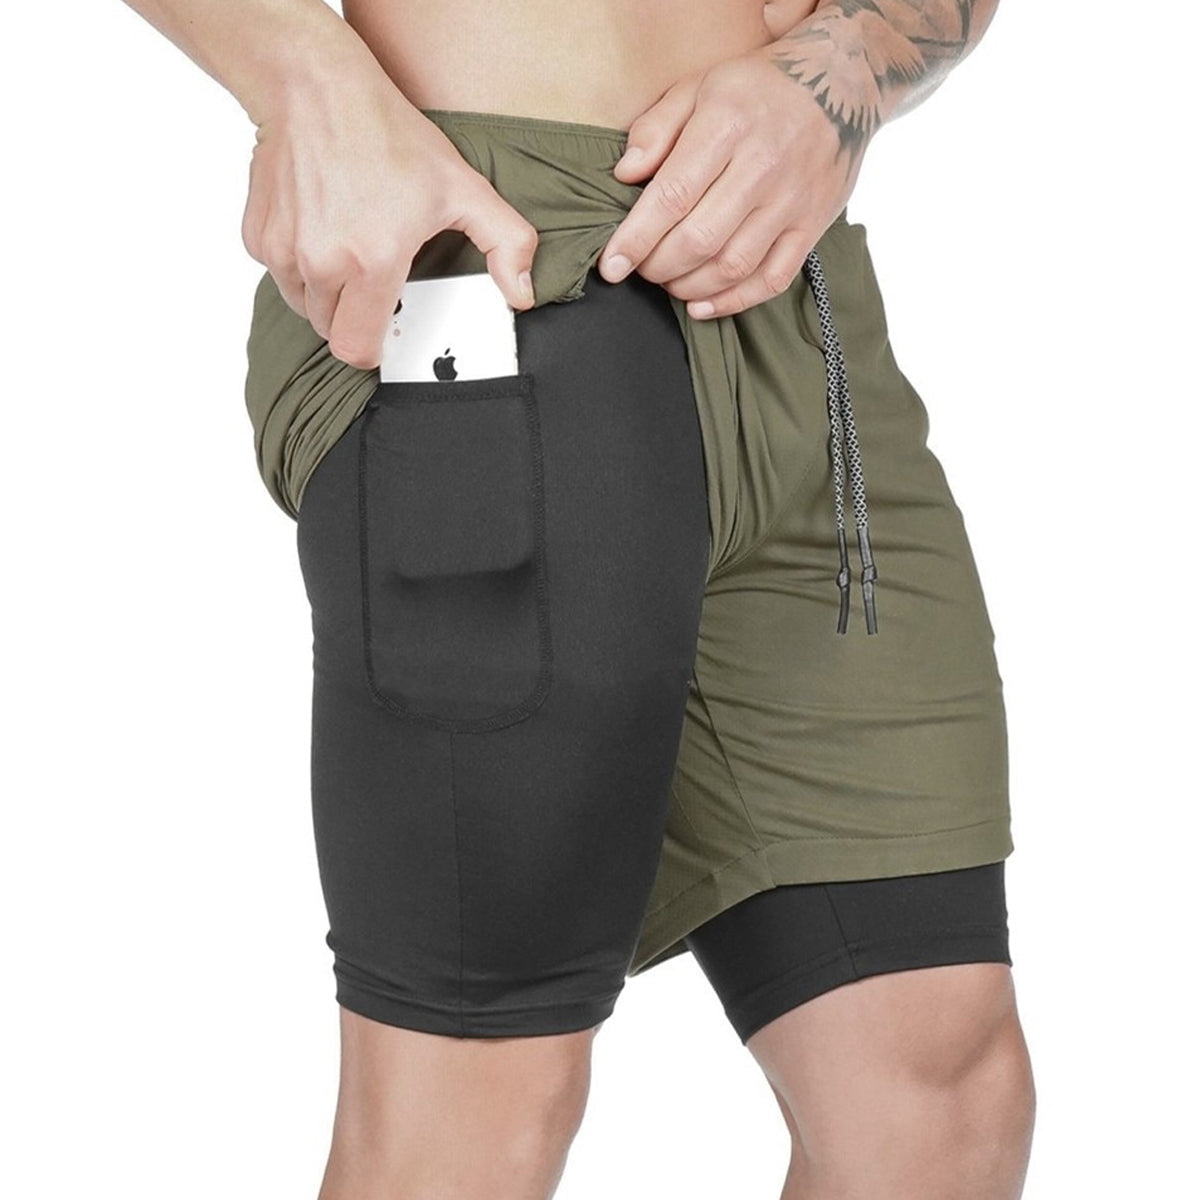 Elastic Running Shorts with Side Pocket Made of Polyester